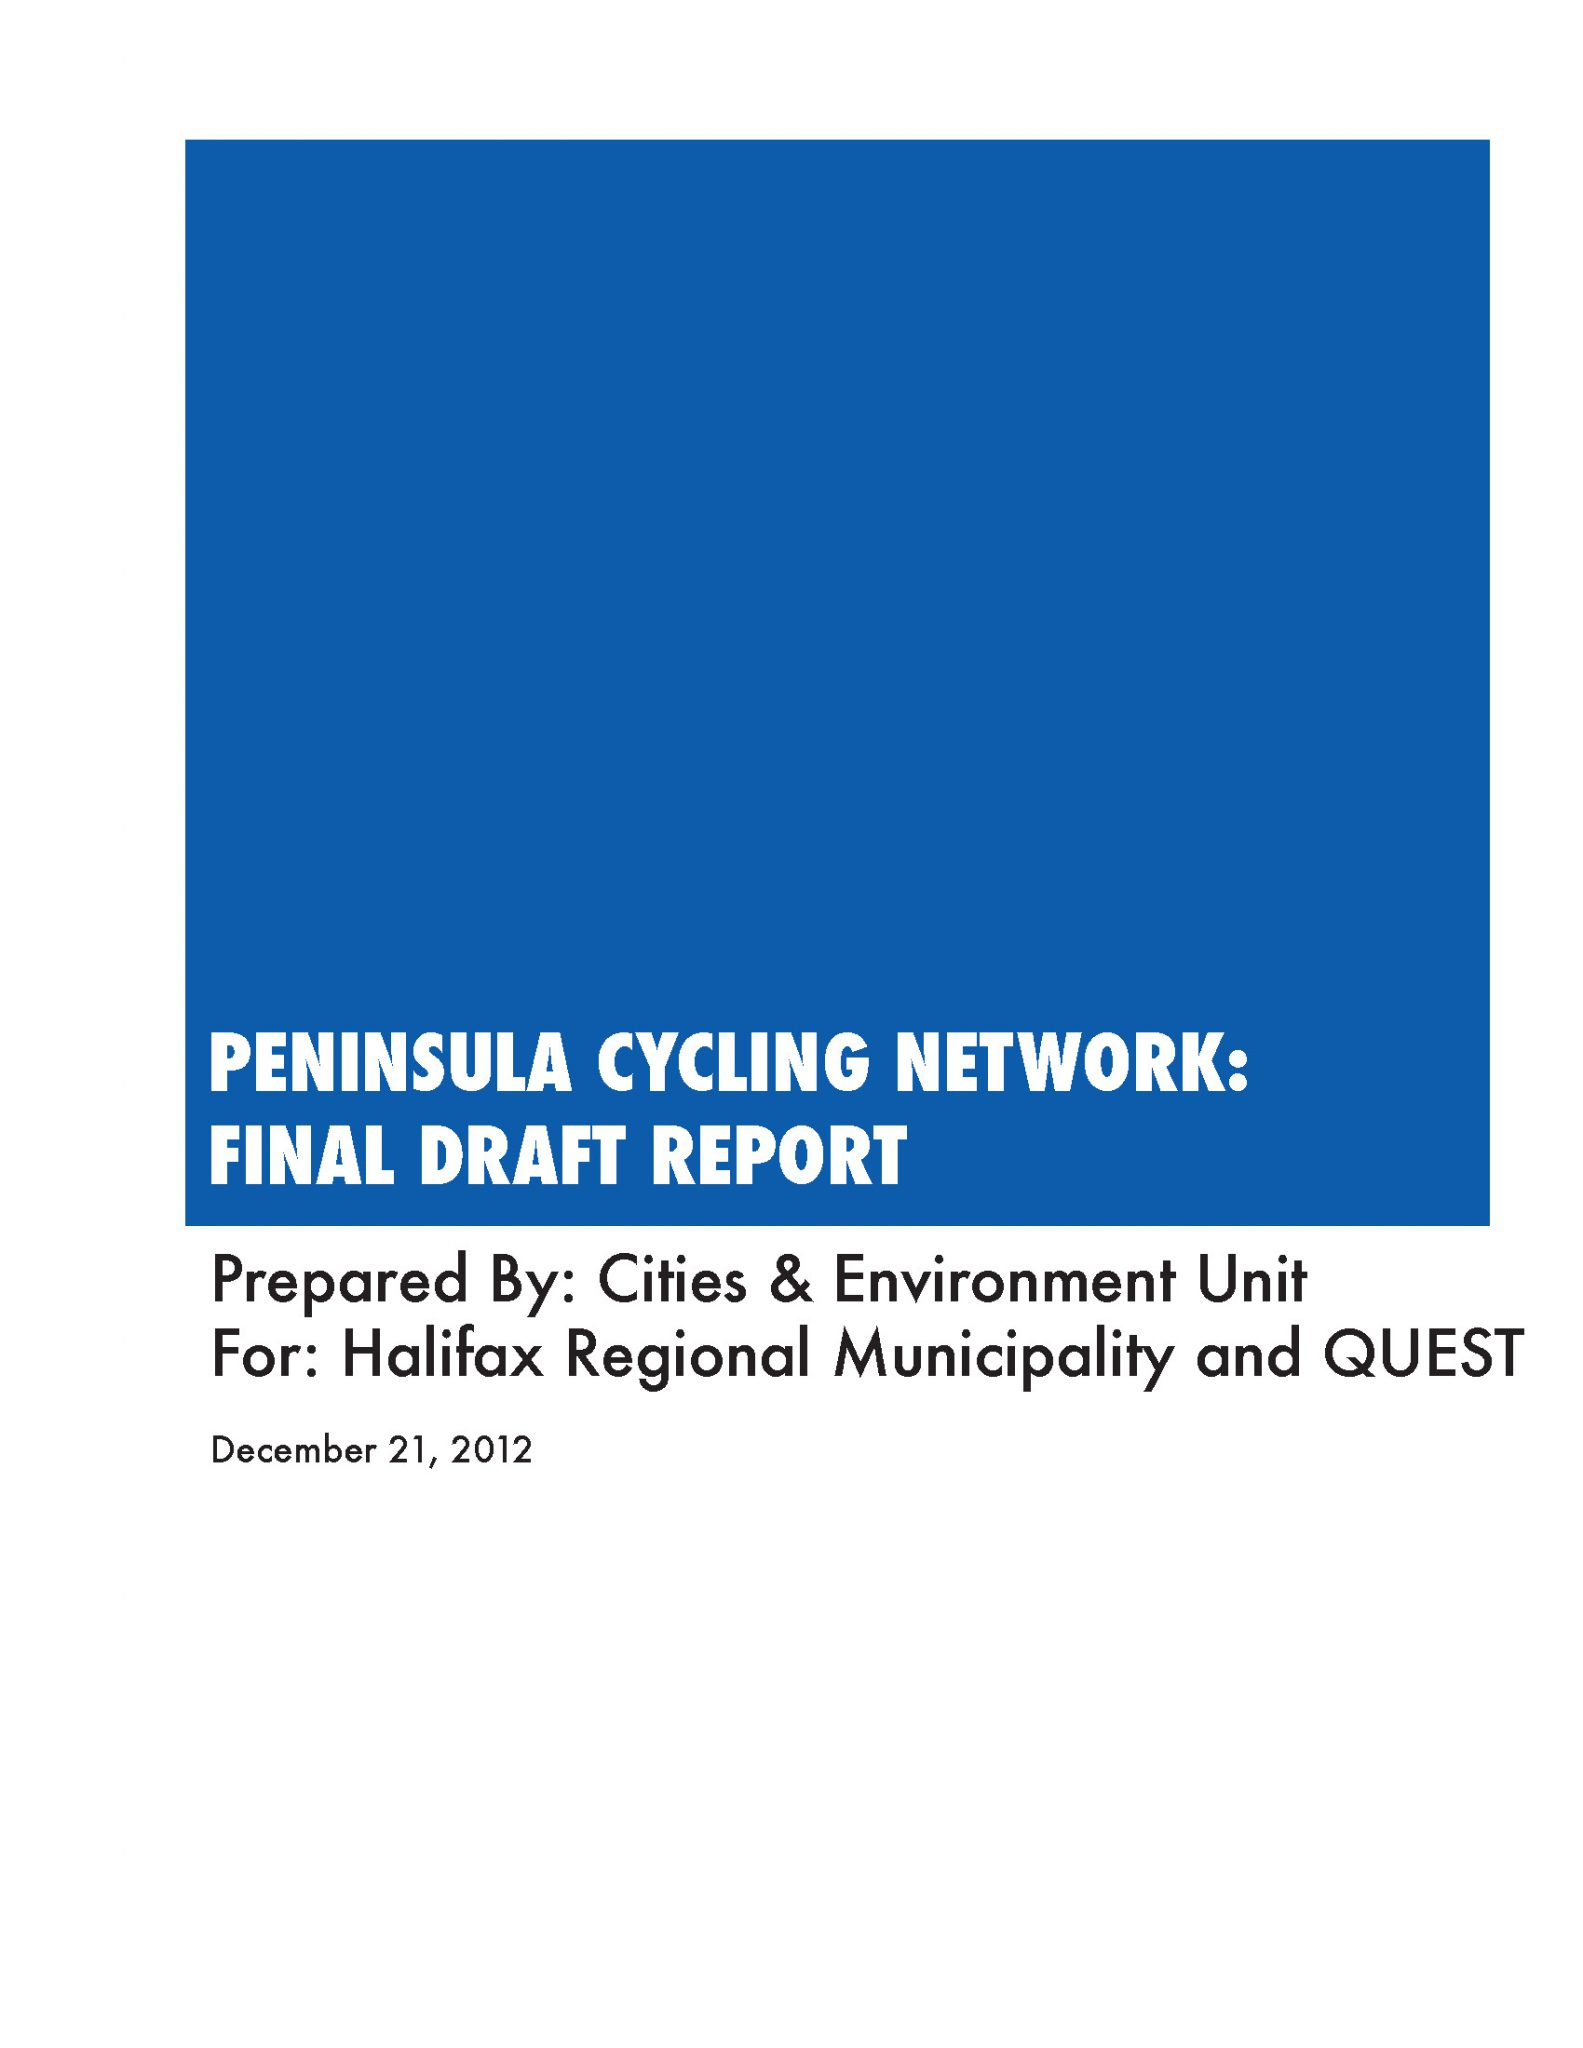 NS Sustainable Transportation Series: Peninsula Cycling Network